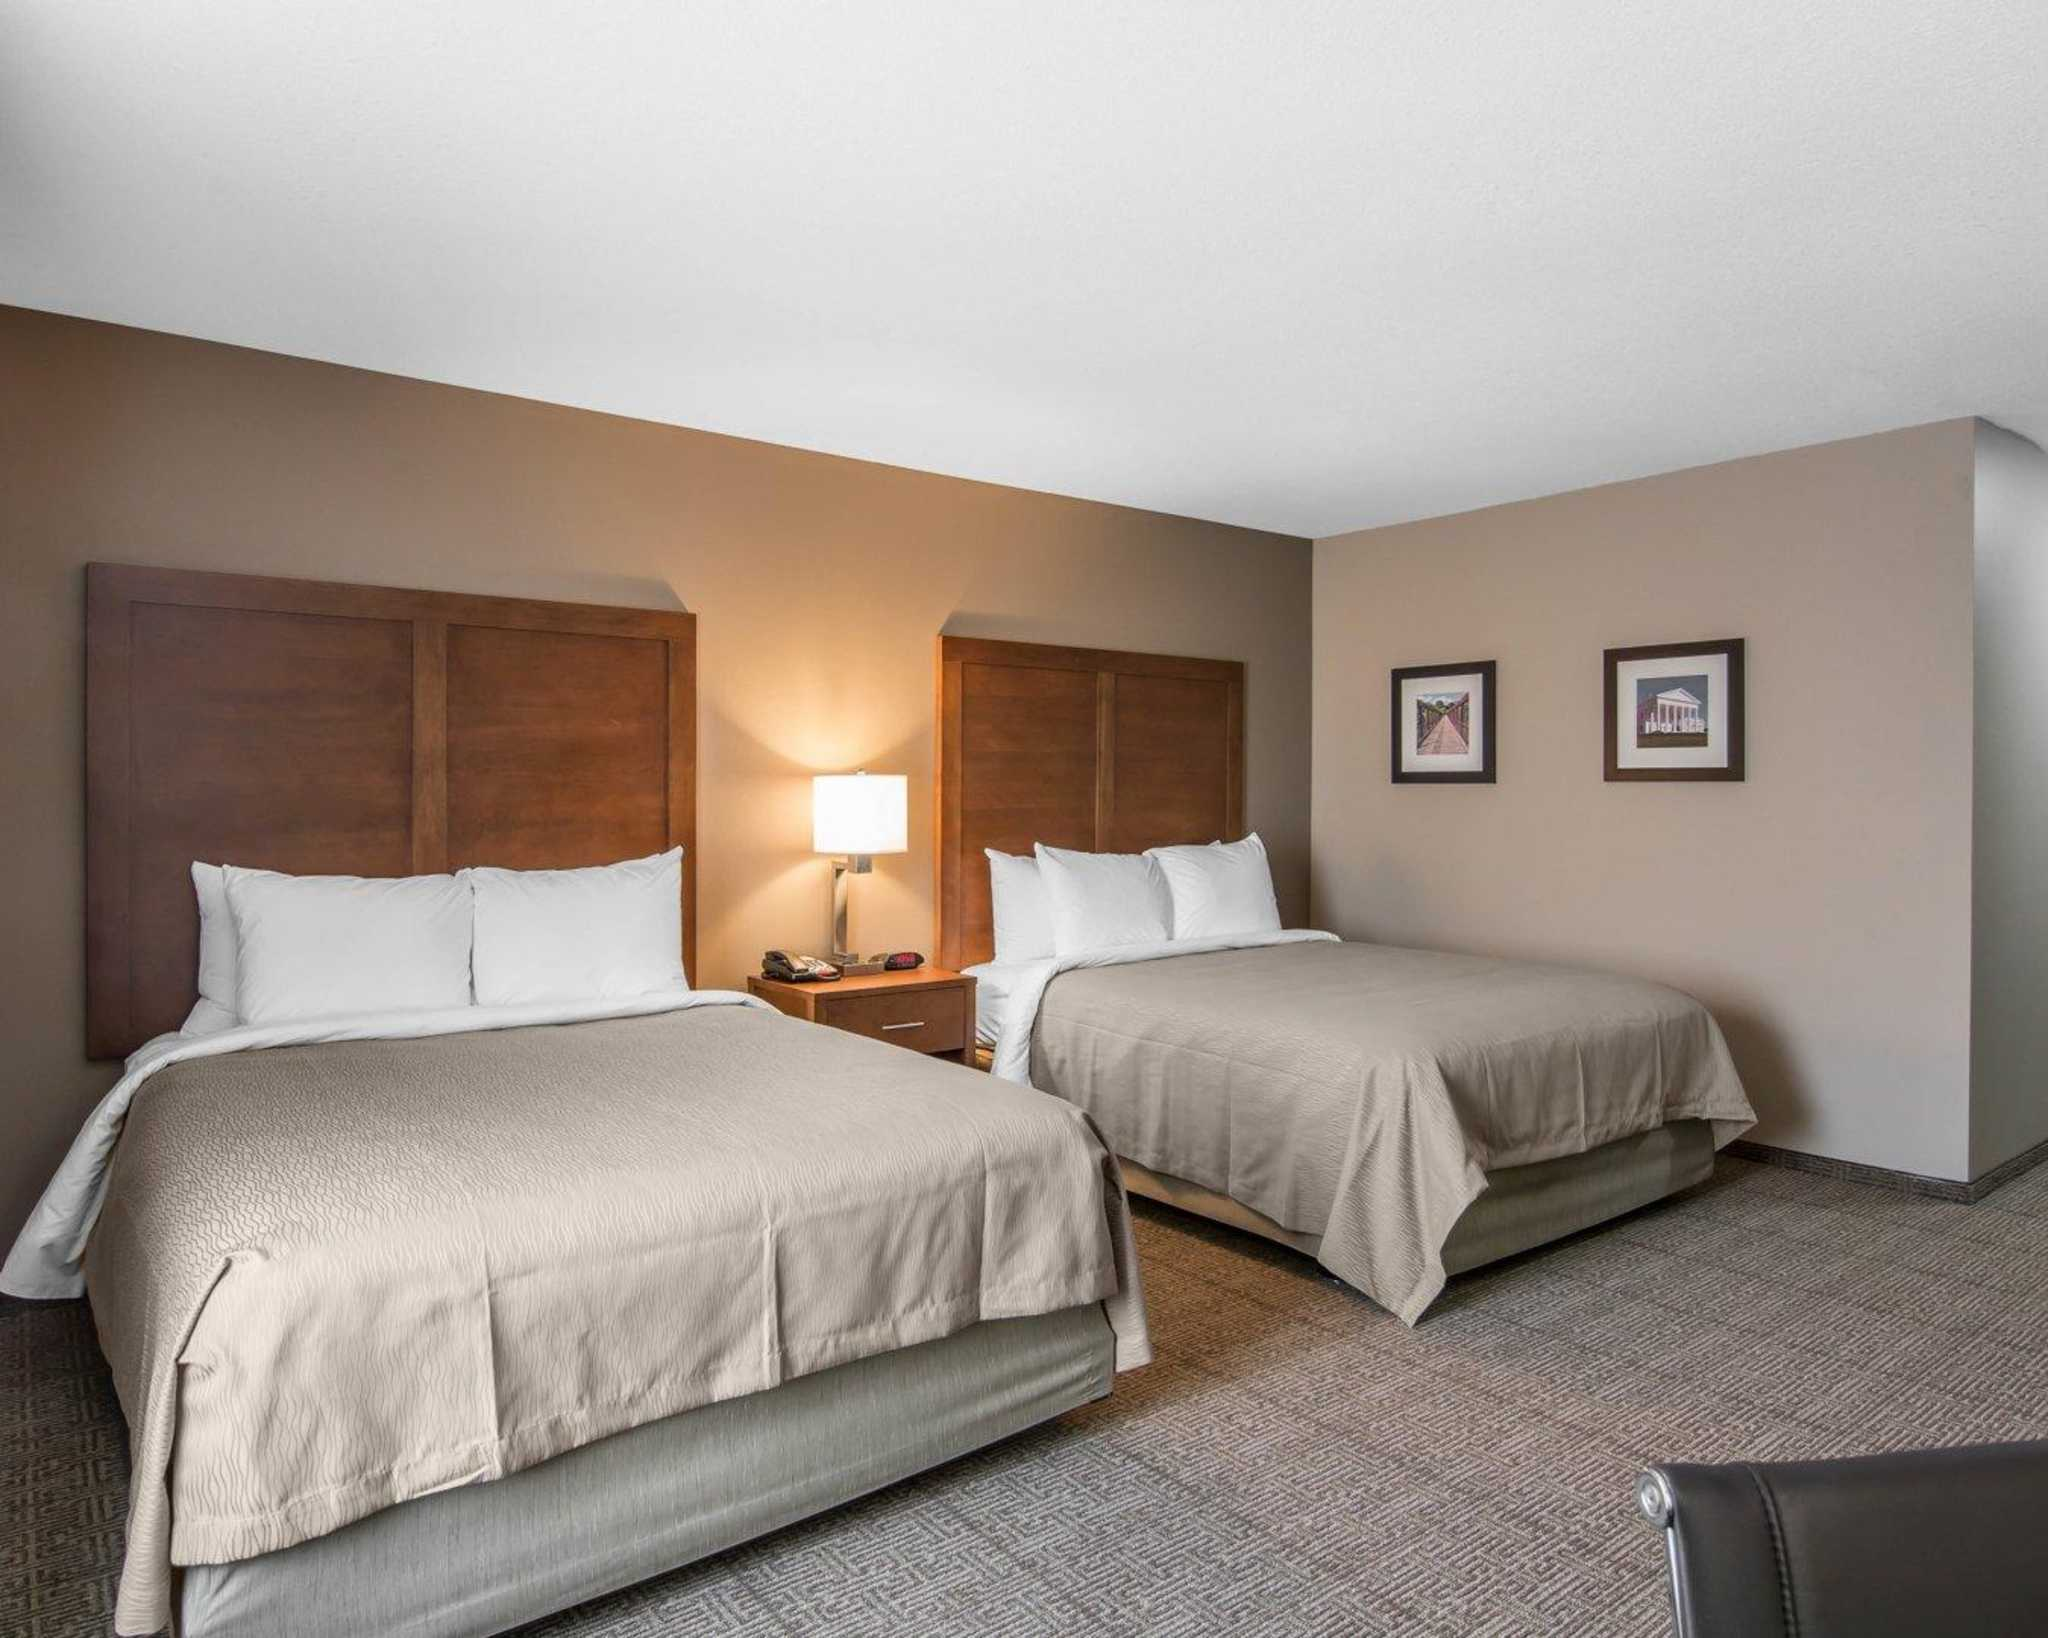 Comfort Inn South Chesterfield - Colonial Heights image 13